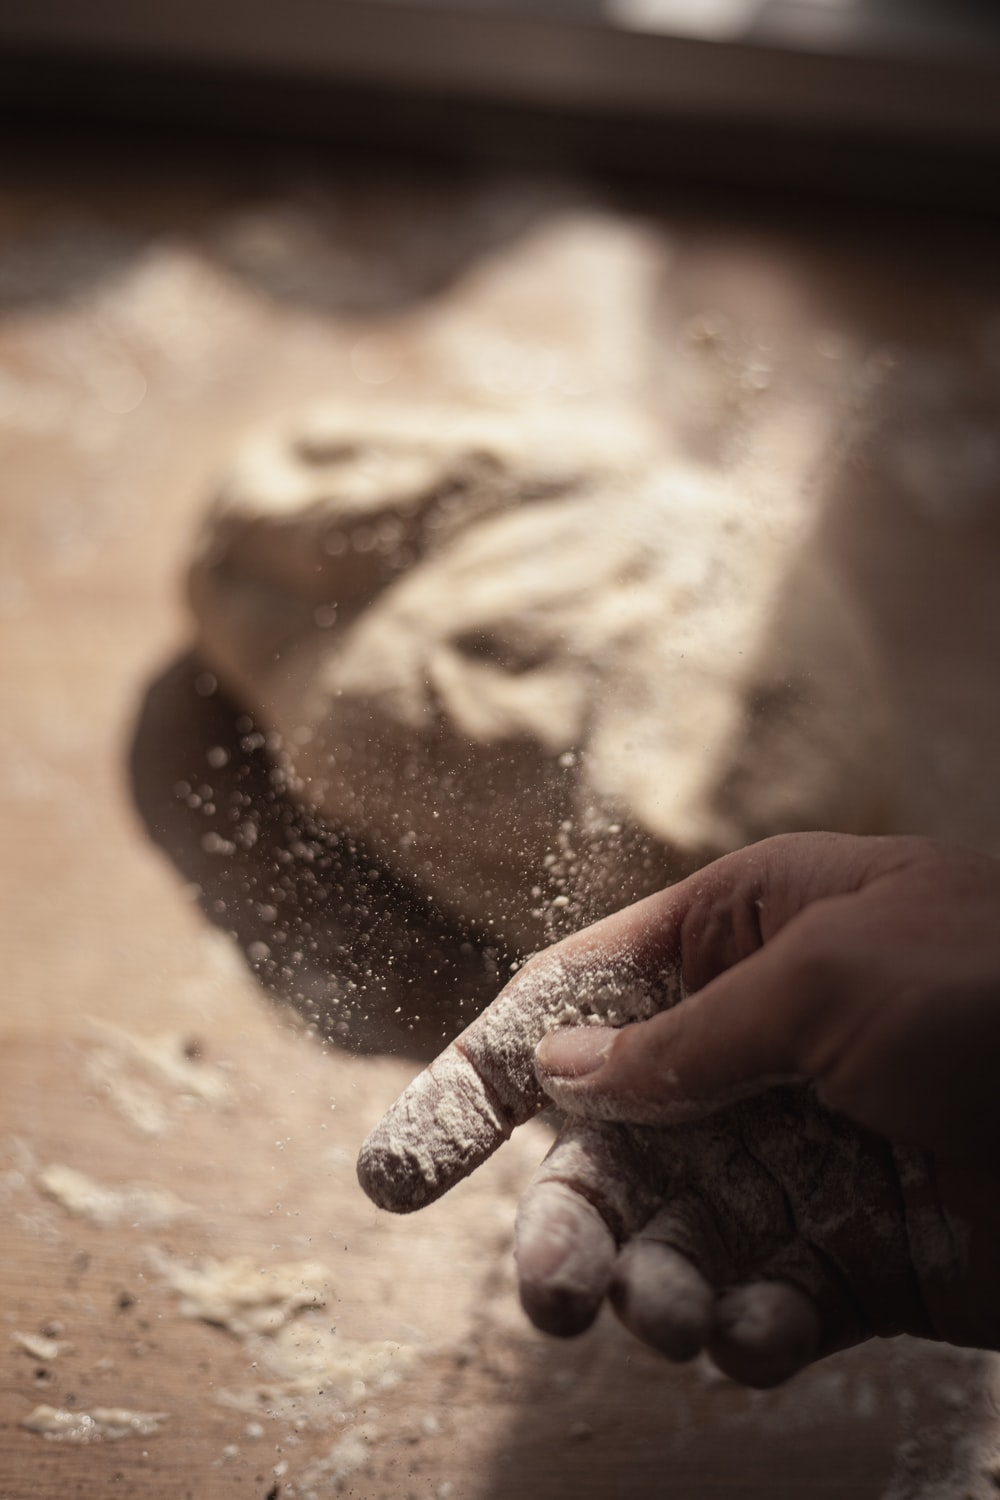 persons hand with white powder